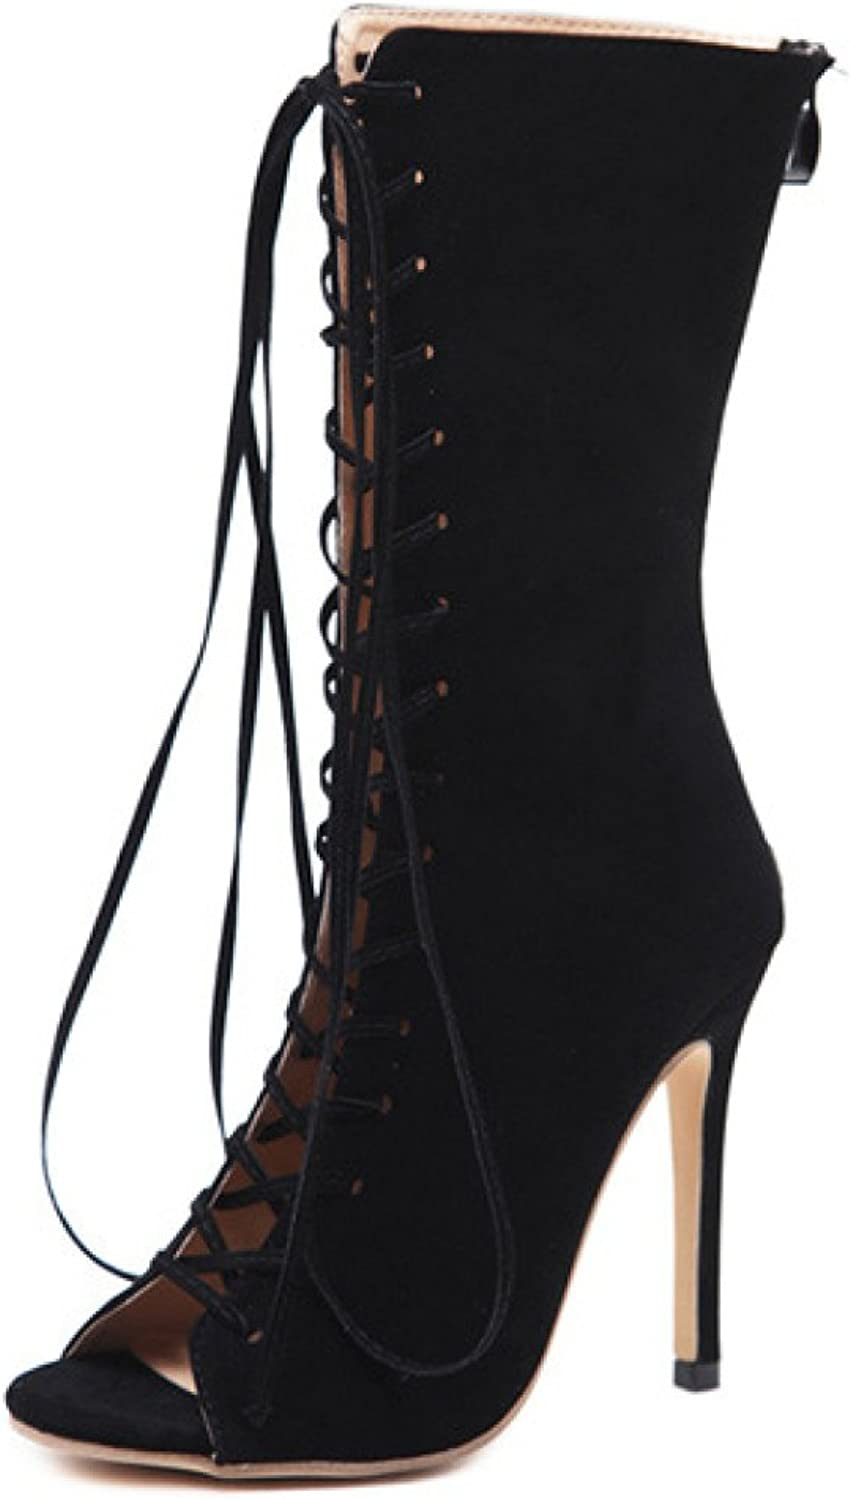 Women's Boots Lace UP High Heels Stiletto Open Toe Sandals Wedding Party Dress shoes,Black-EU 37=6.5B(M) US